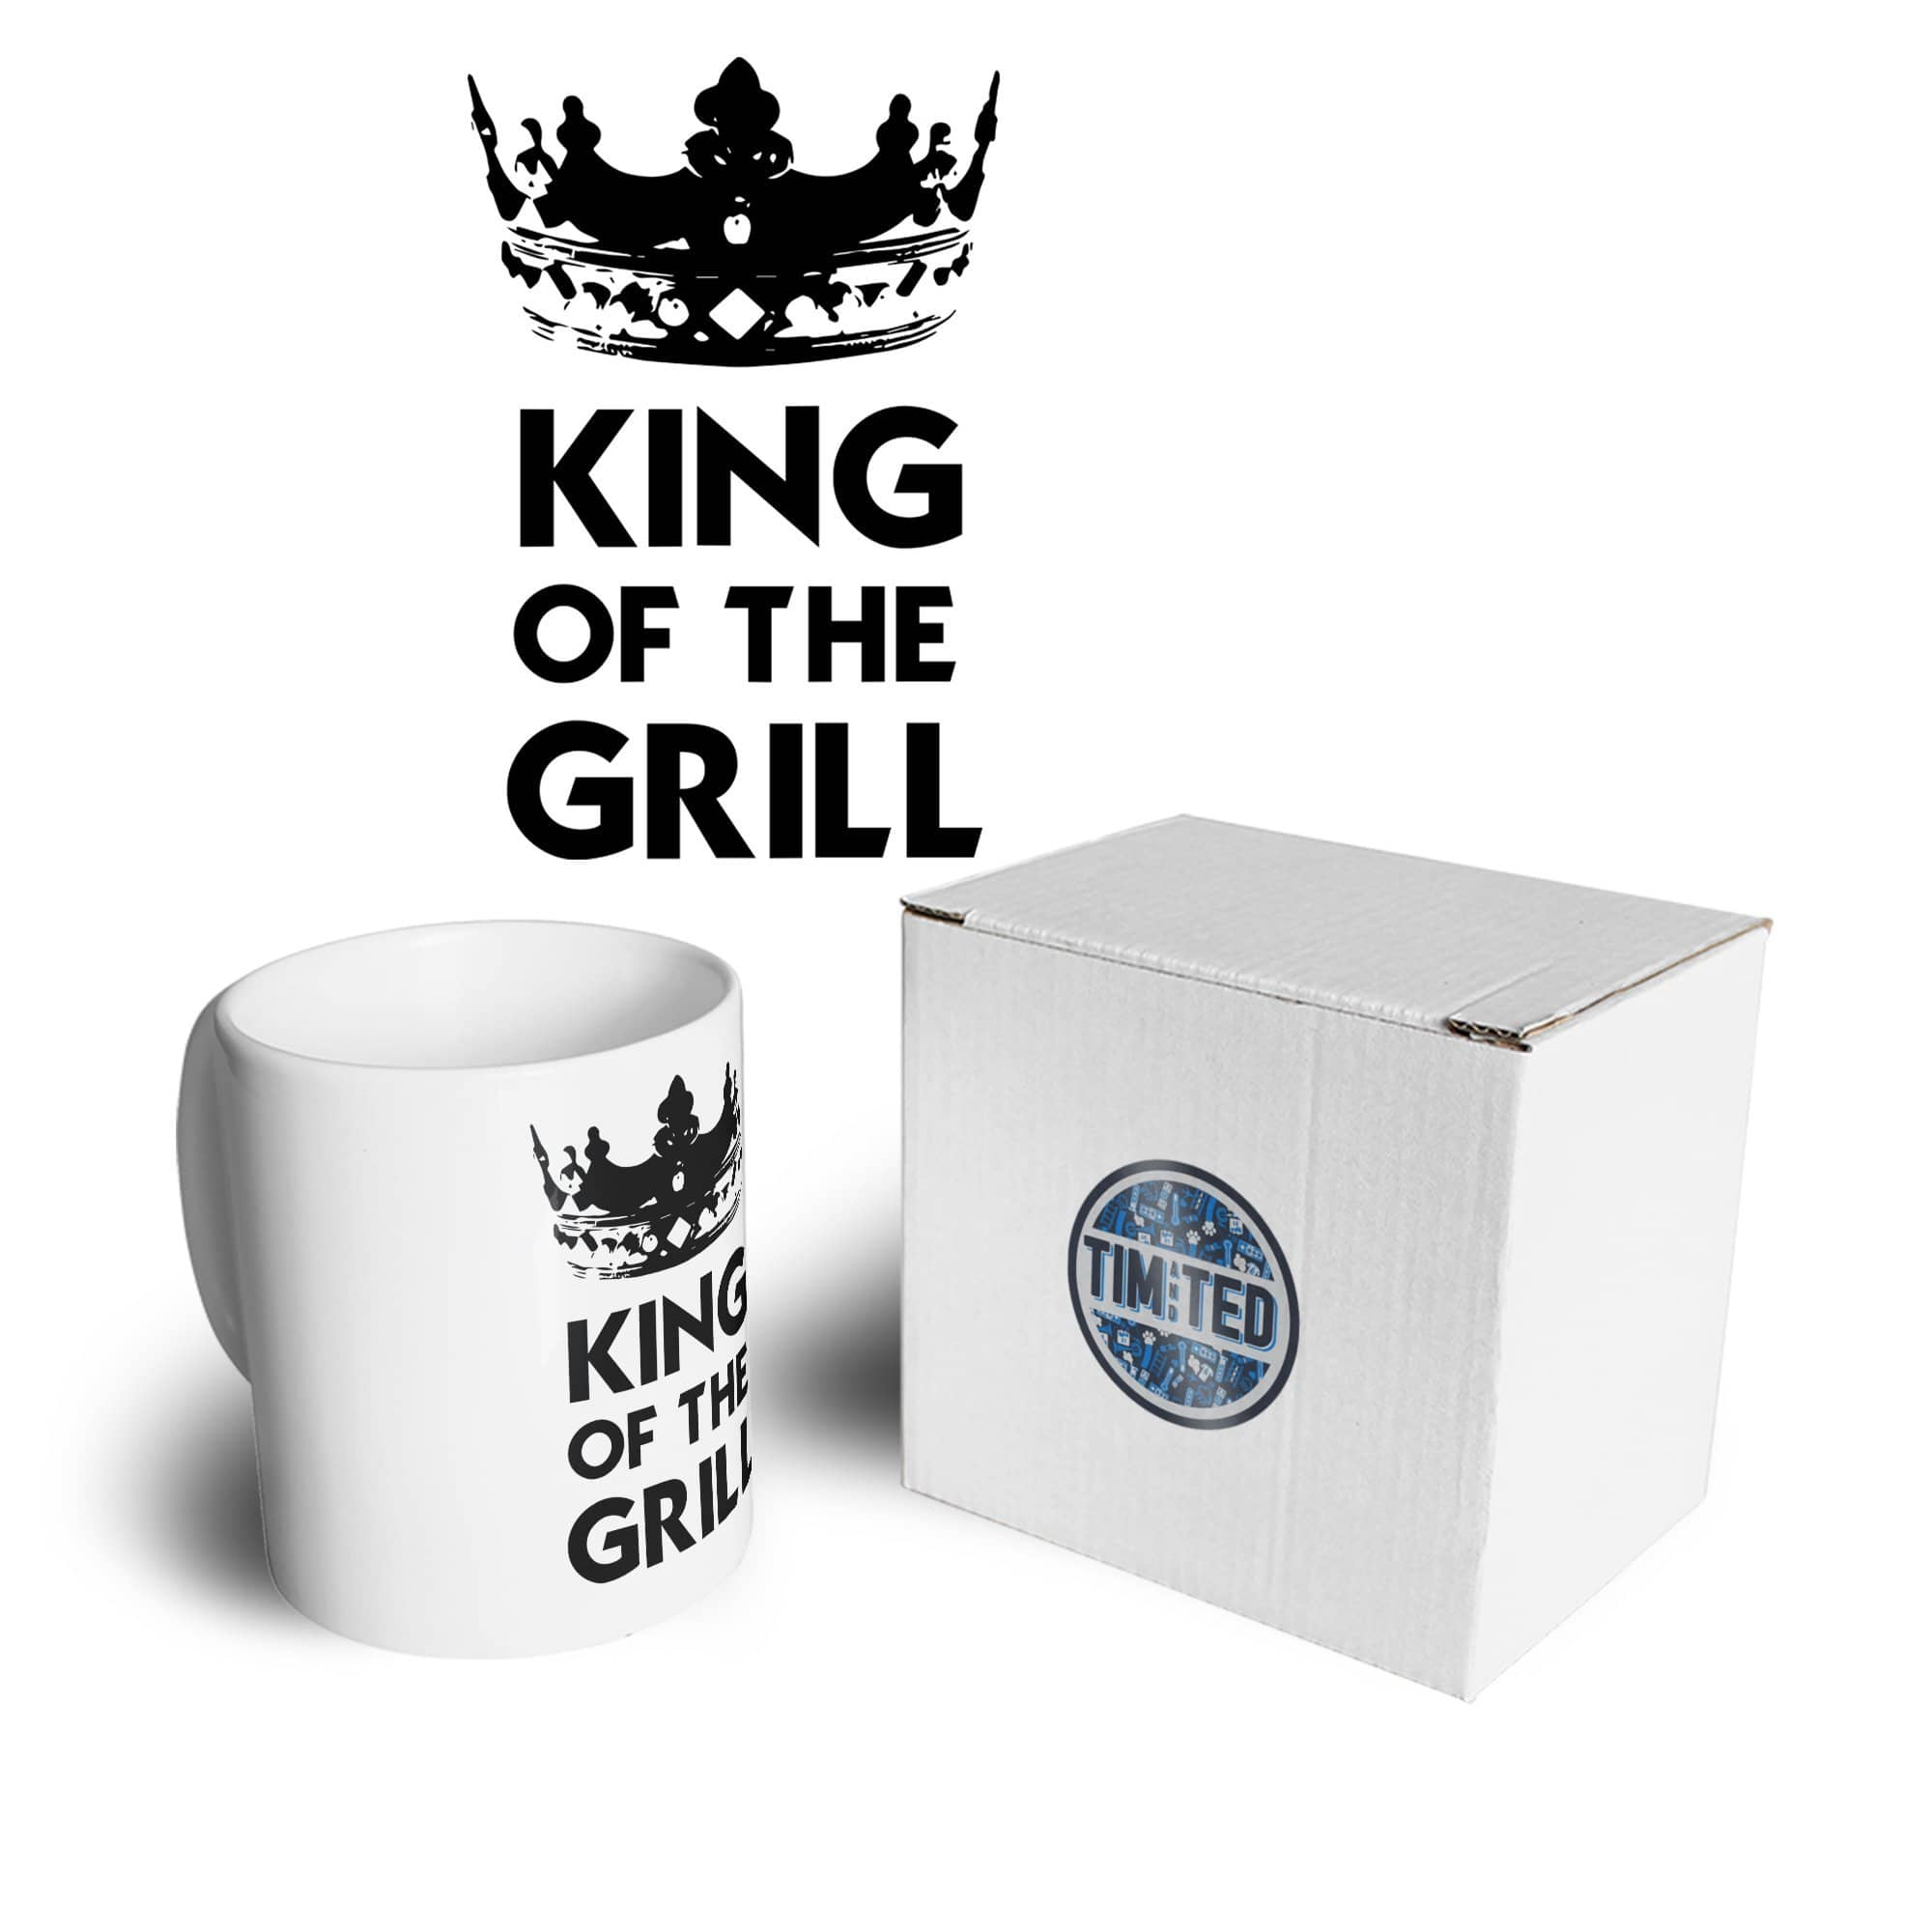 Novelty Cooking Mug King Of The Grill Slogan Coffee Tea Cup